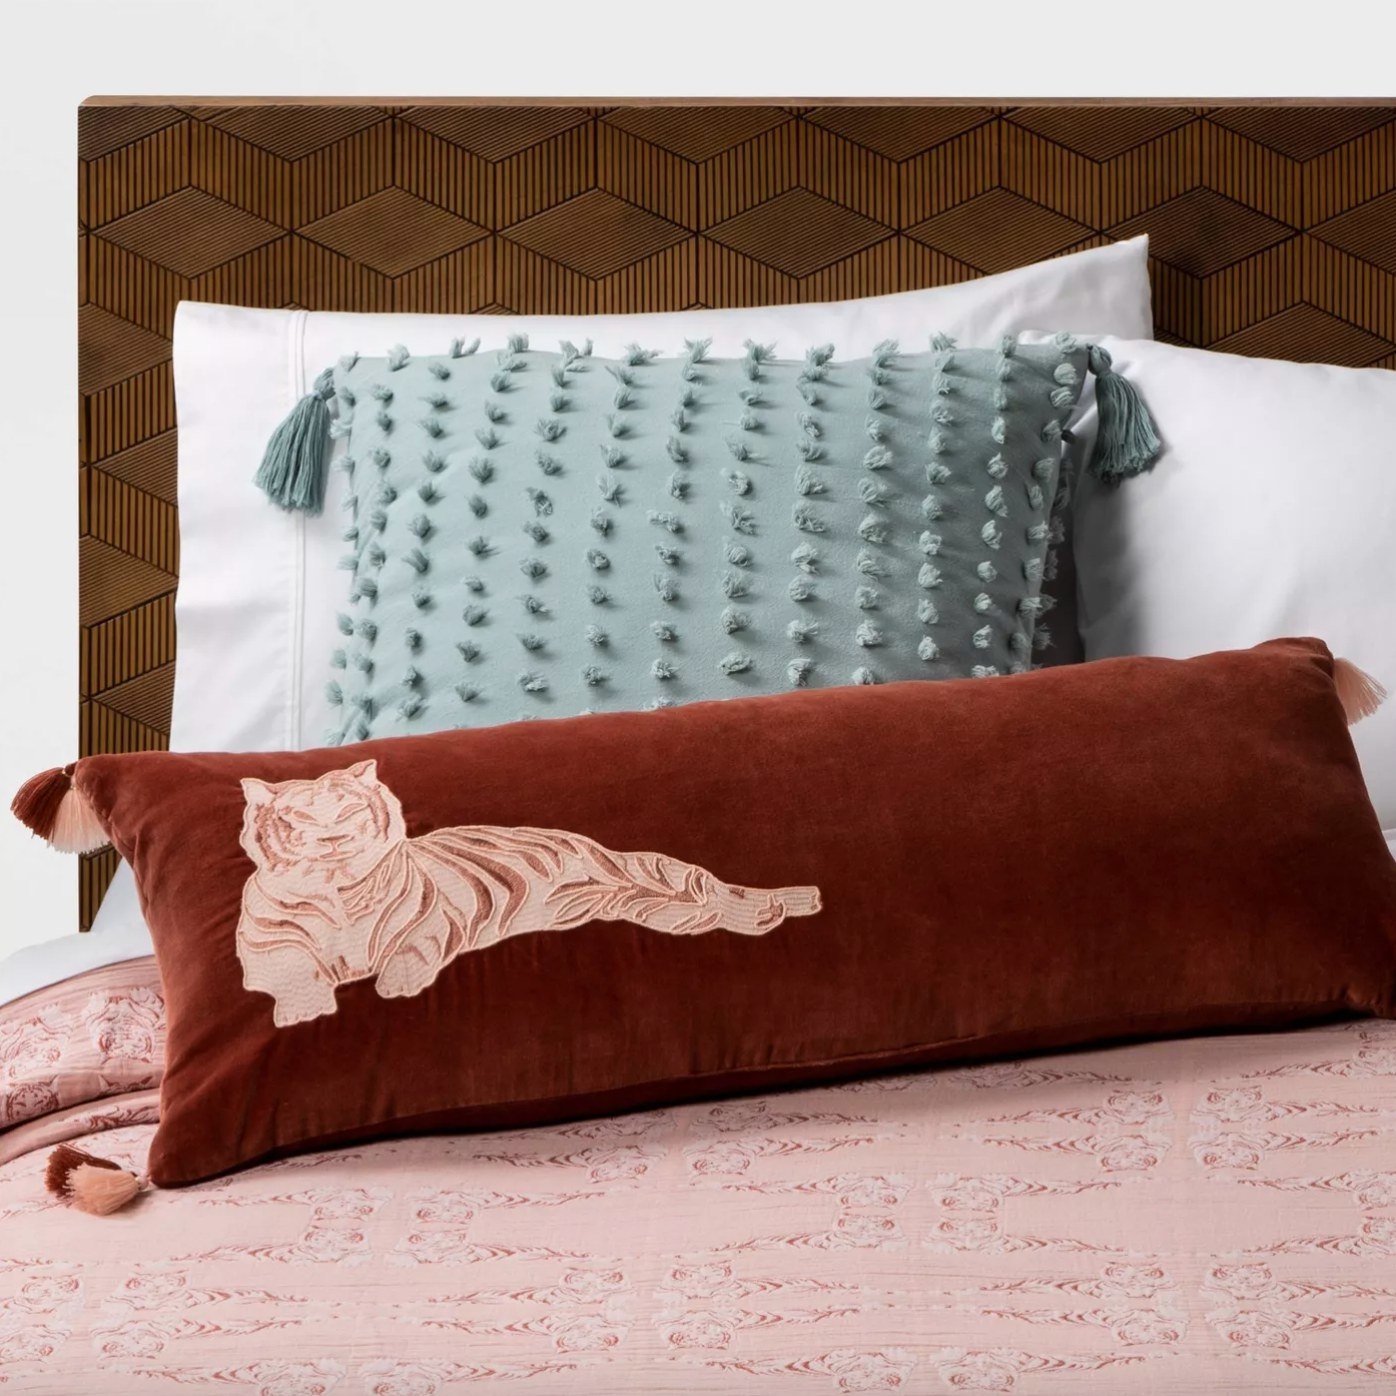 The decorative throw pillow in dusty jade on a bed with a wood headboard